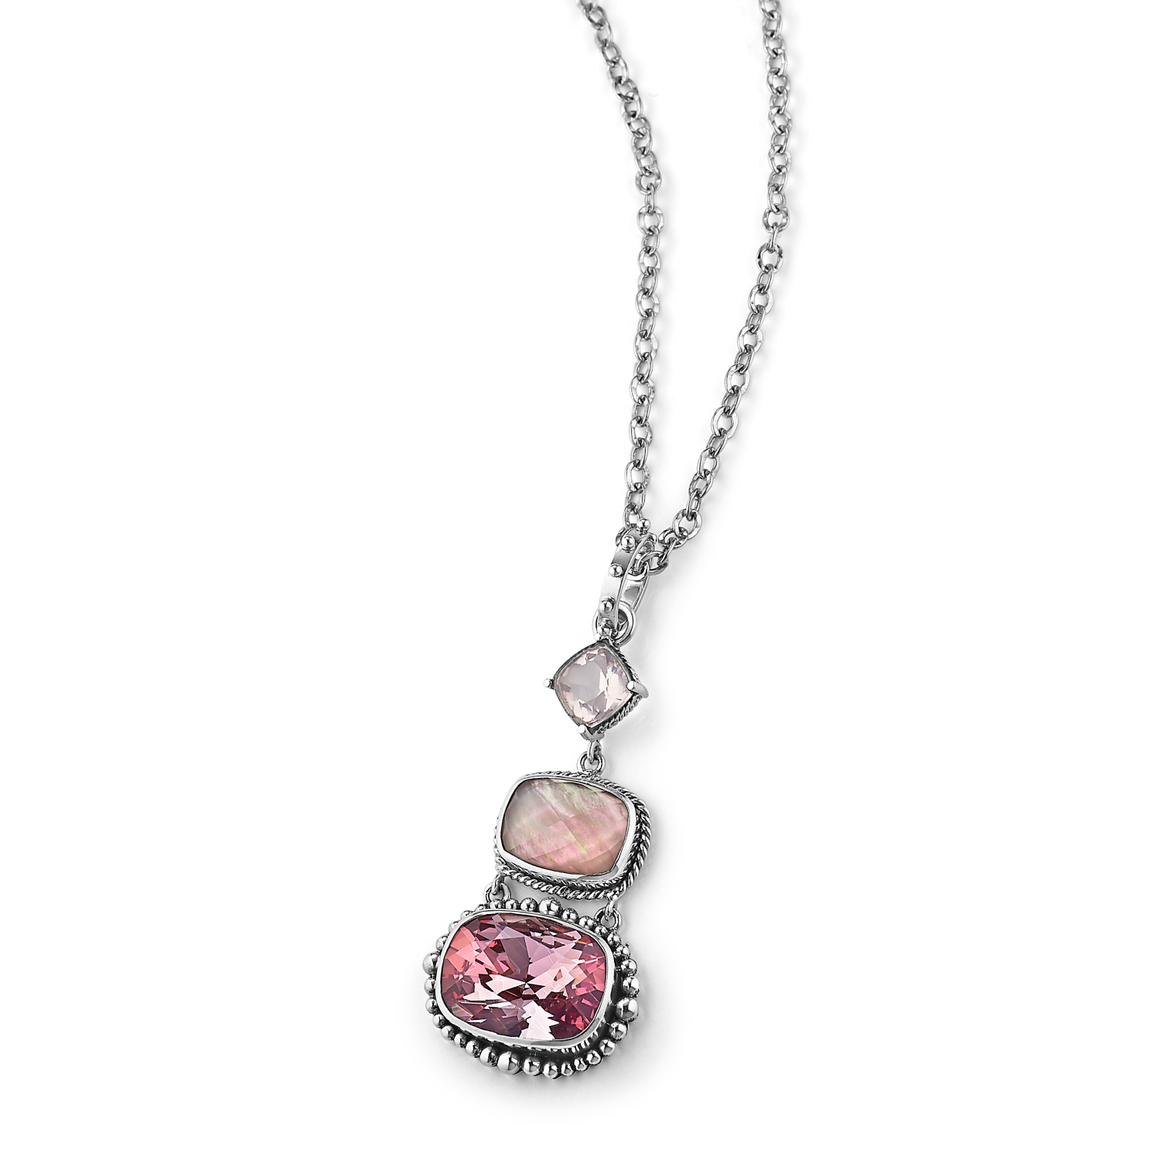 "Daydream Believer Pendant On 18"" Chain from Bonn Bons by Lori Bonn (515201MCM)"